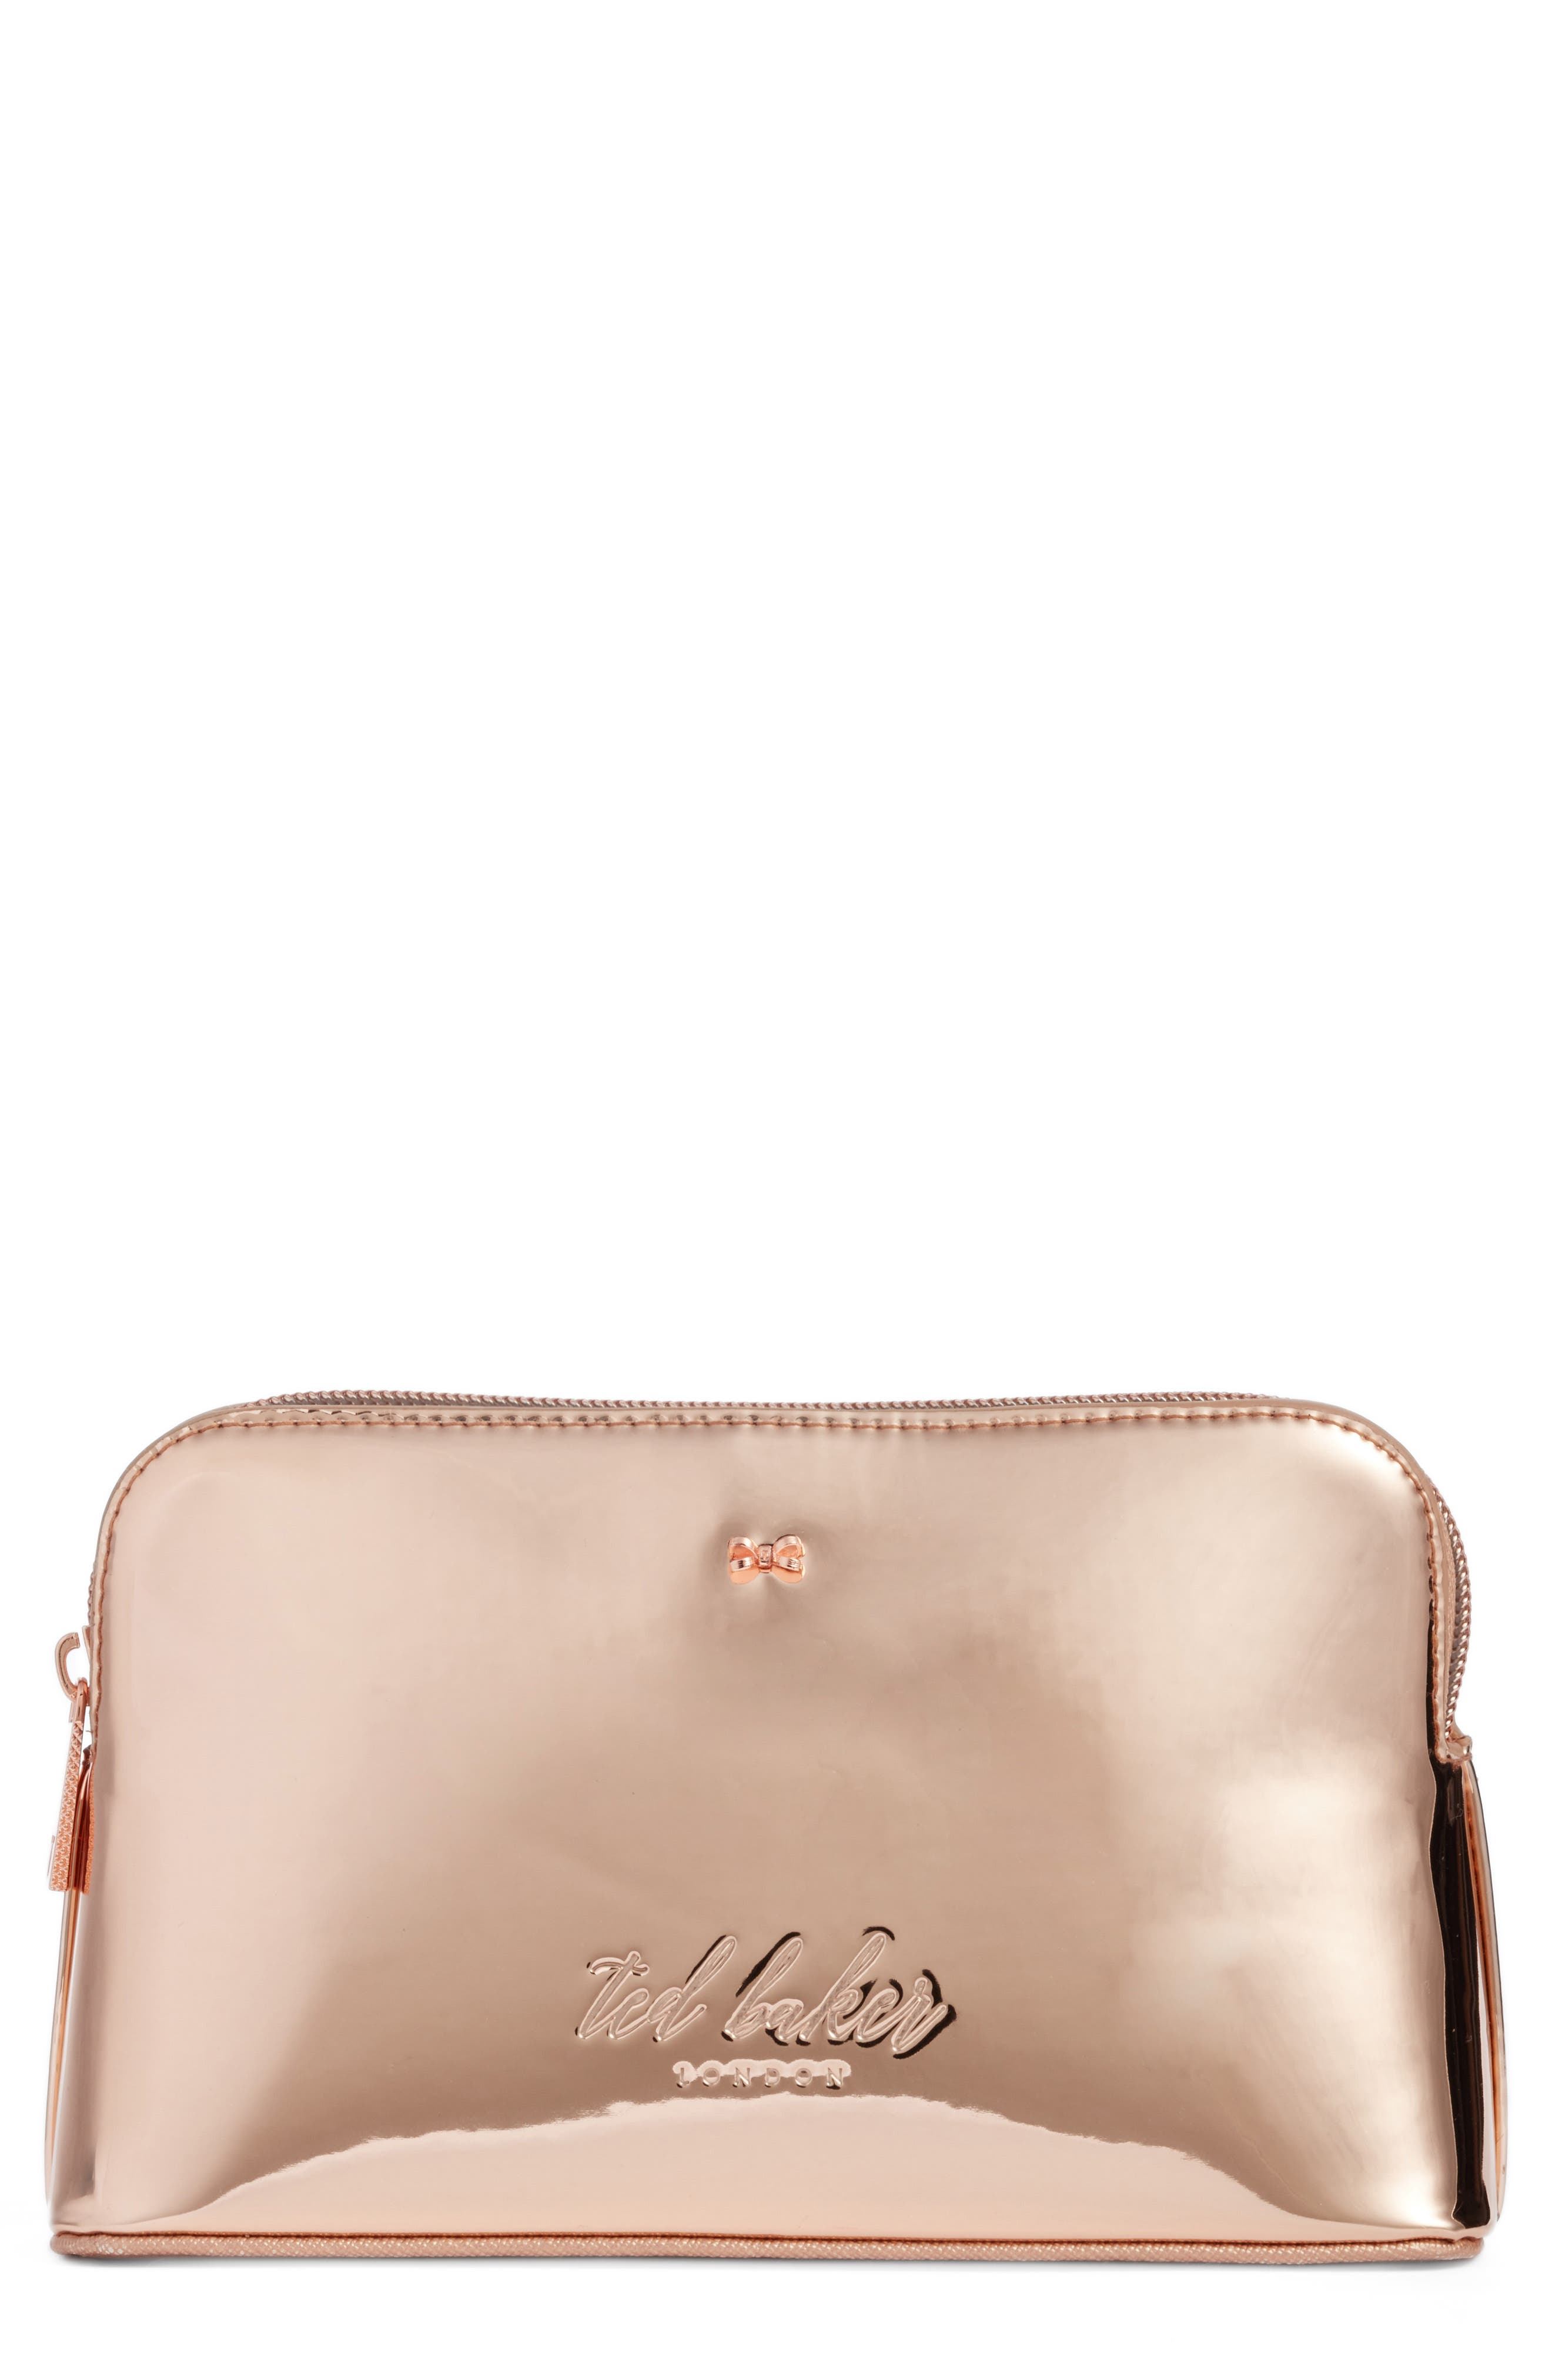 Lindsay Metallic Cosmetics Case,                             Main thumbnail 1, color,                             Rose Gold